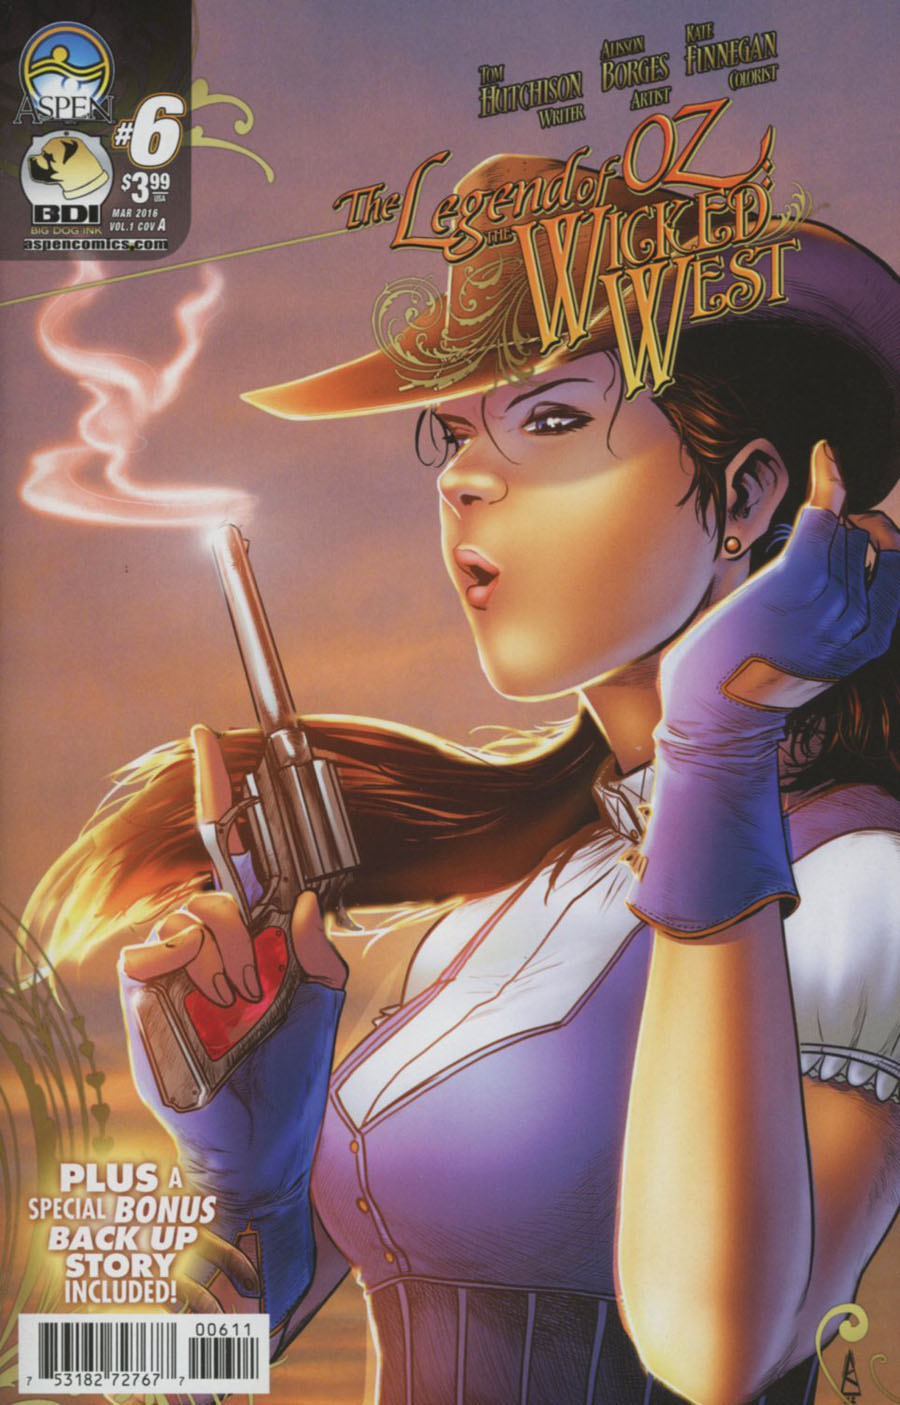 Legend Of Oz The Wicked West Vol 3 #6 Cover A Regular Allison Borges Cover